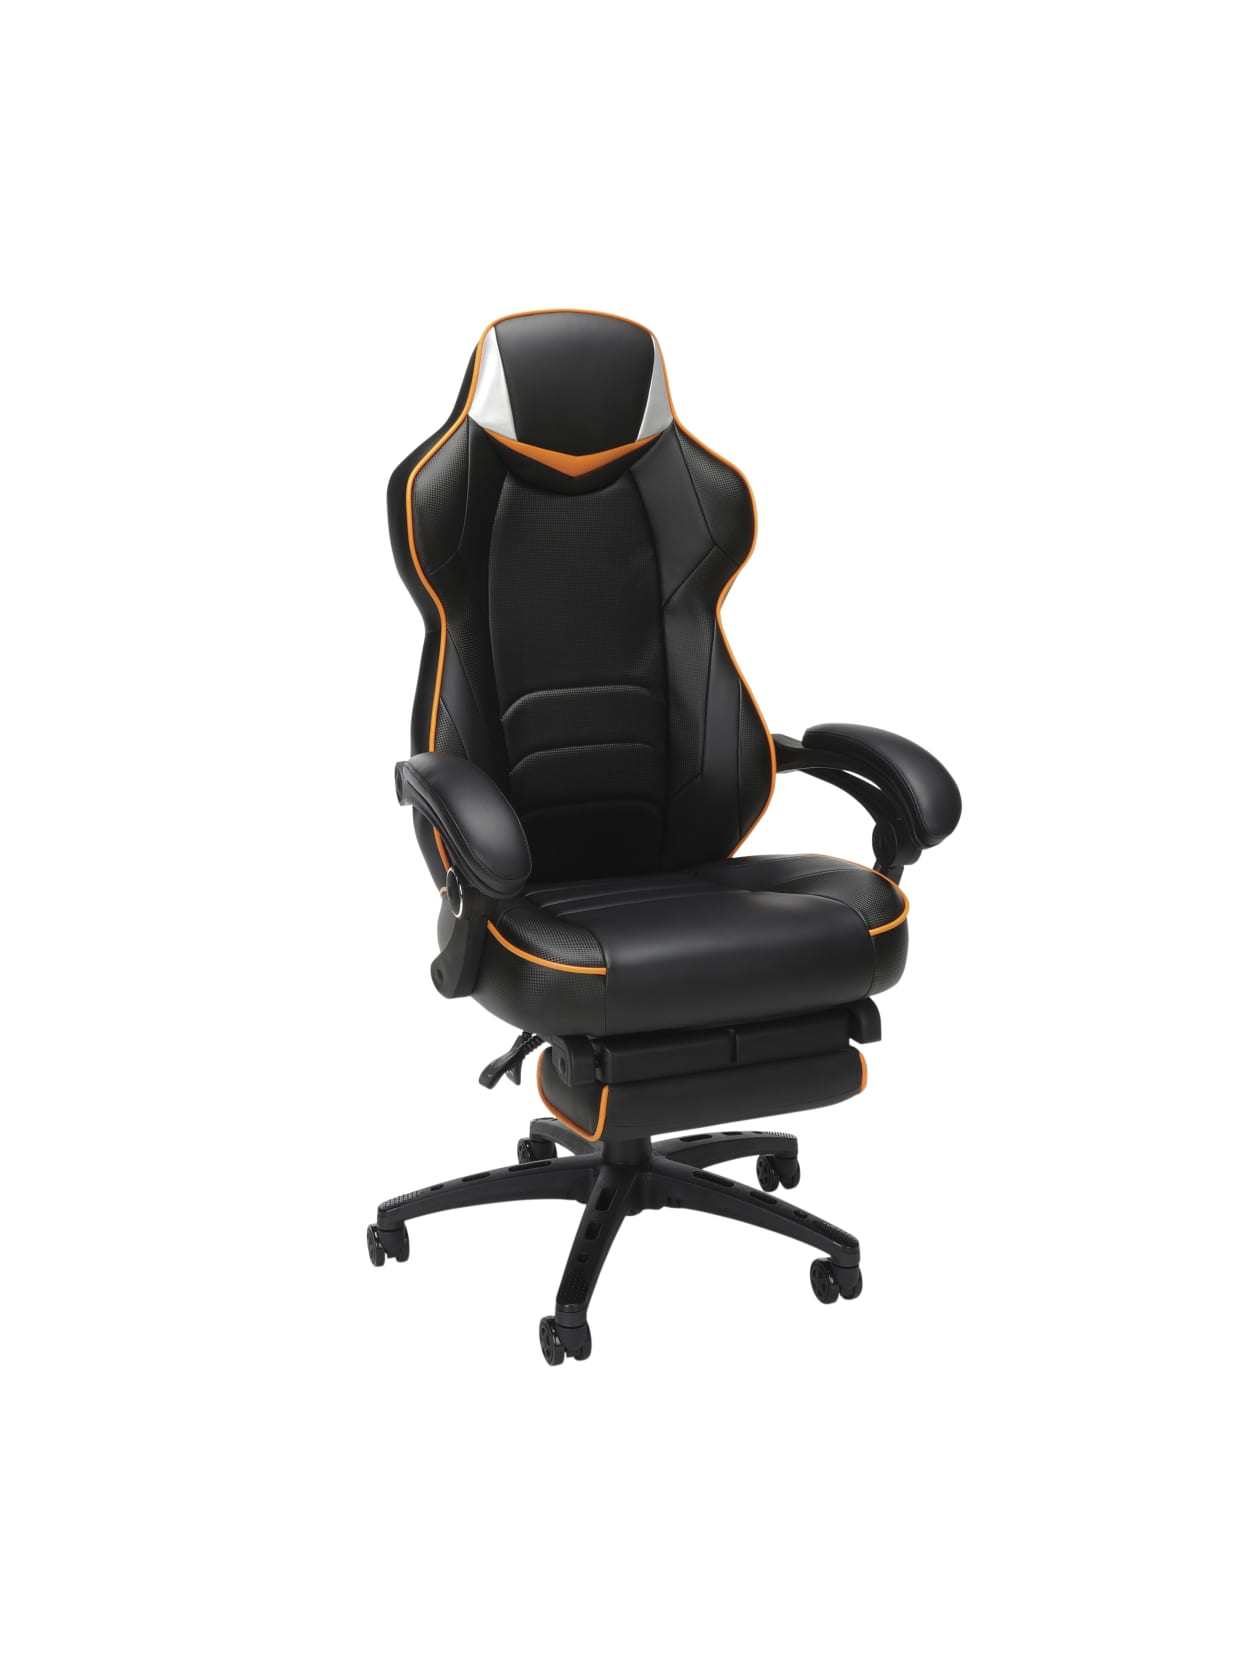 Respawn Fortnite Omega Xi Gaming Chair Orange Office Depot Fortnite's omega skin is one of the sleekest looking outfits in the game. ofm